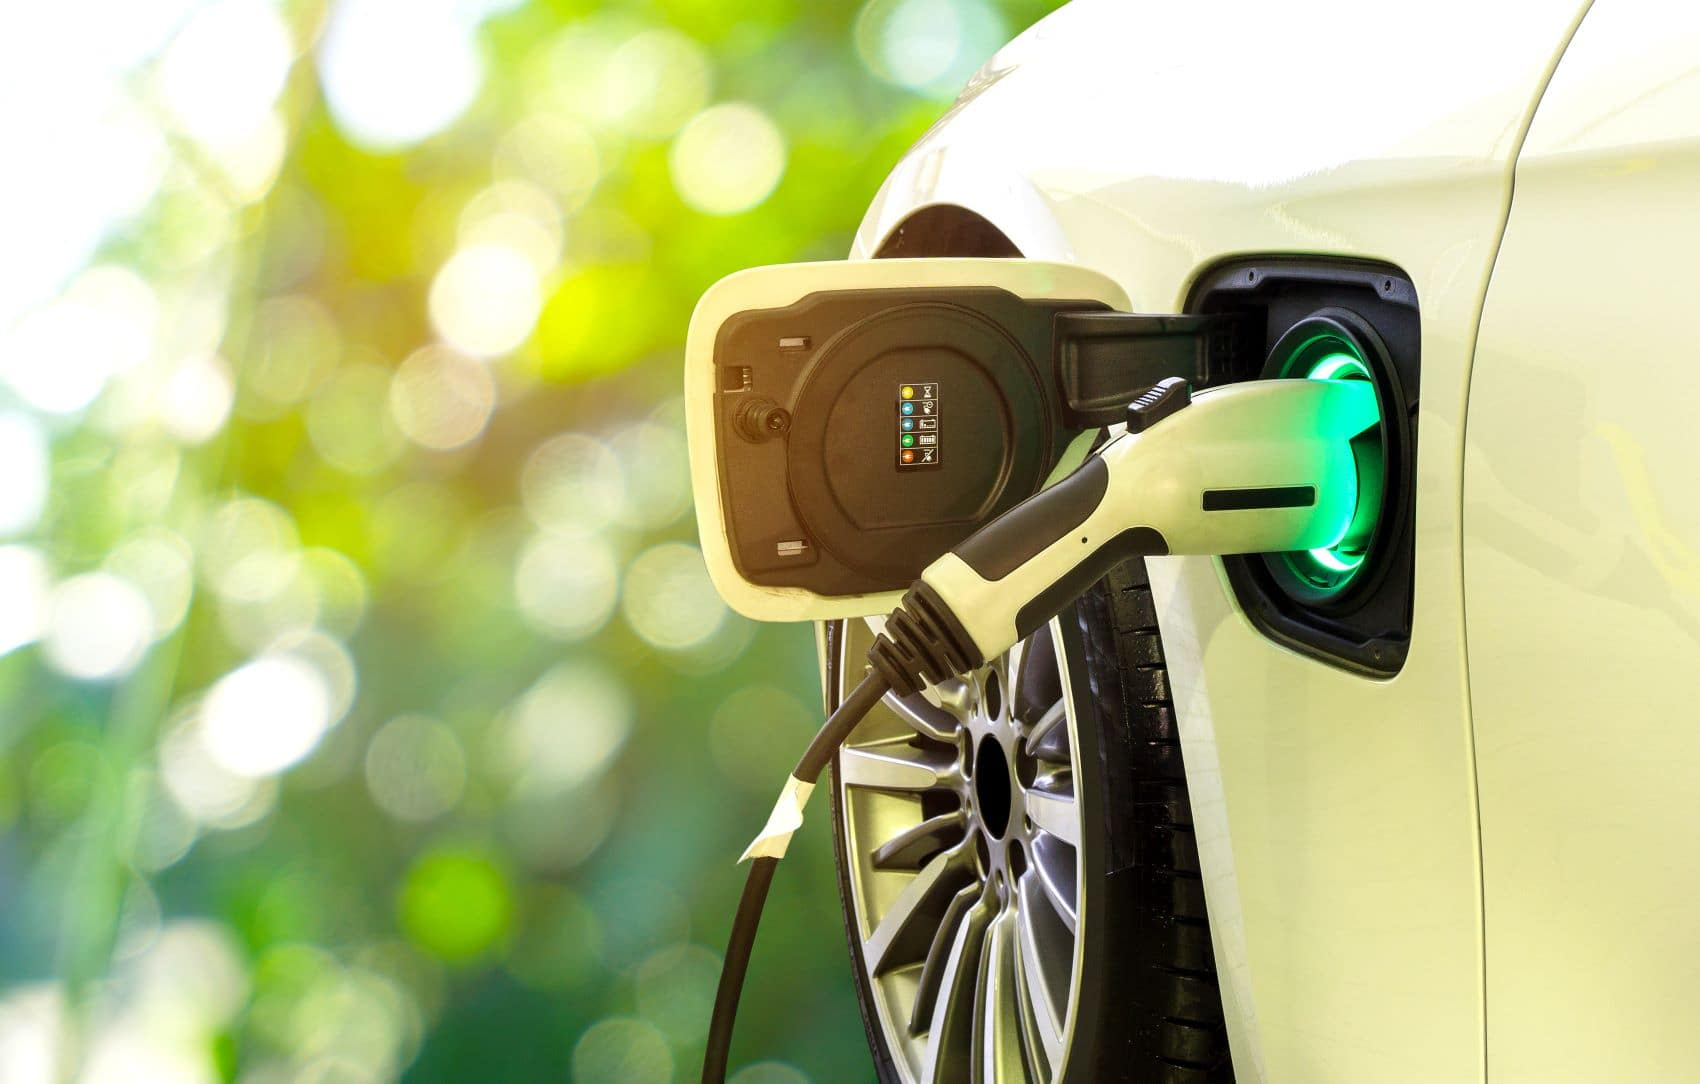 Electric vehicle charging at a clean fuel charging station